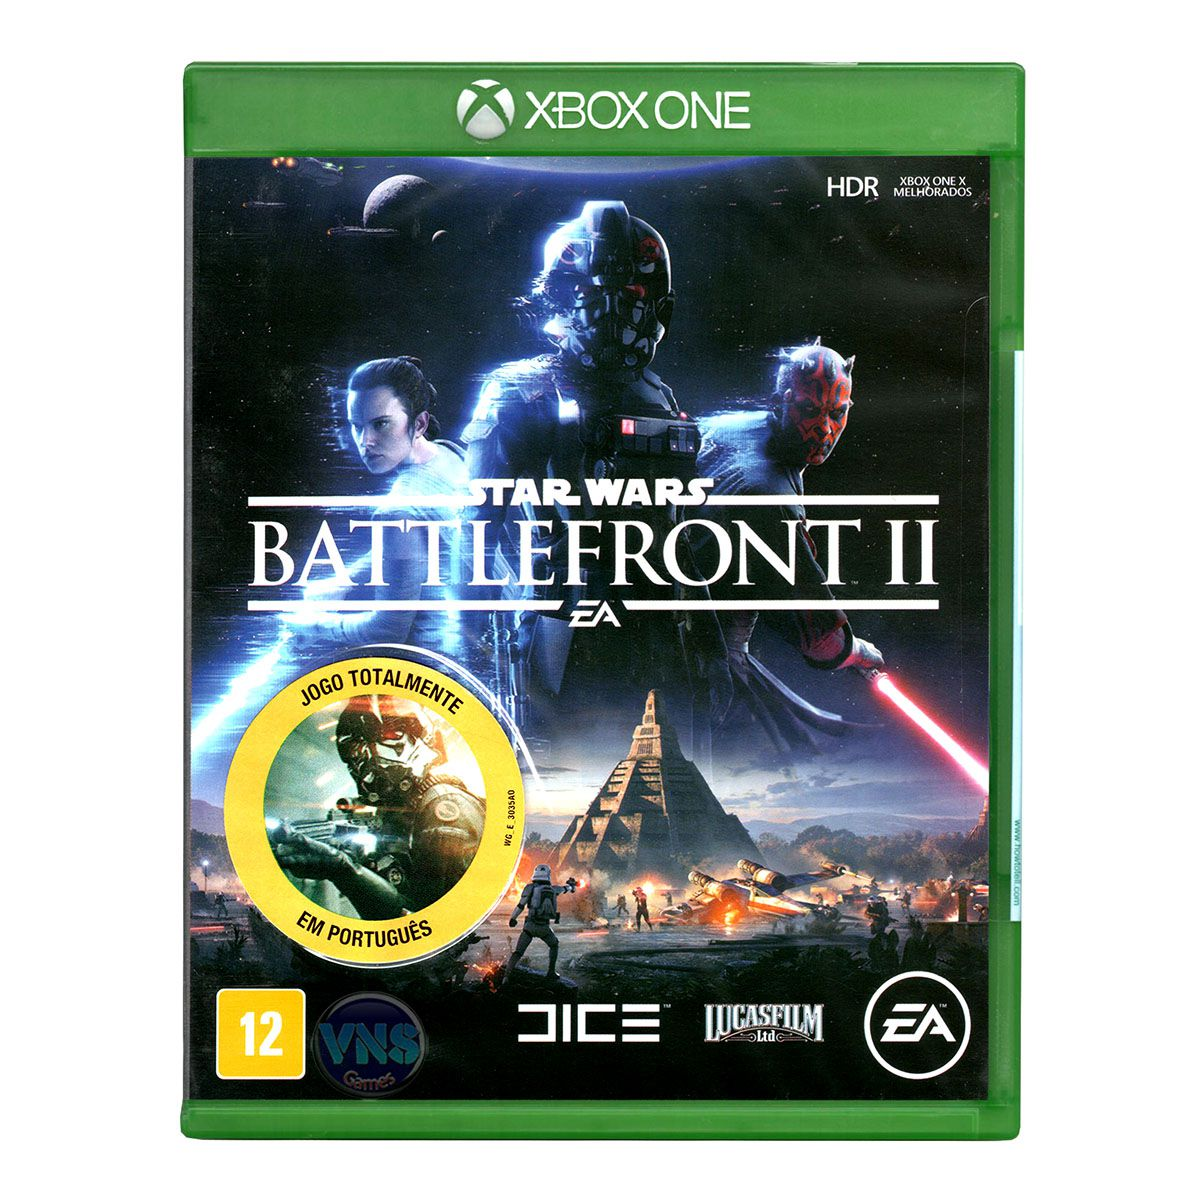 Star Wars Battlefront II 2 - Xbox One